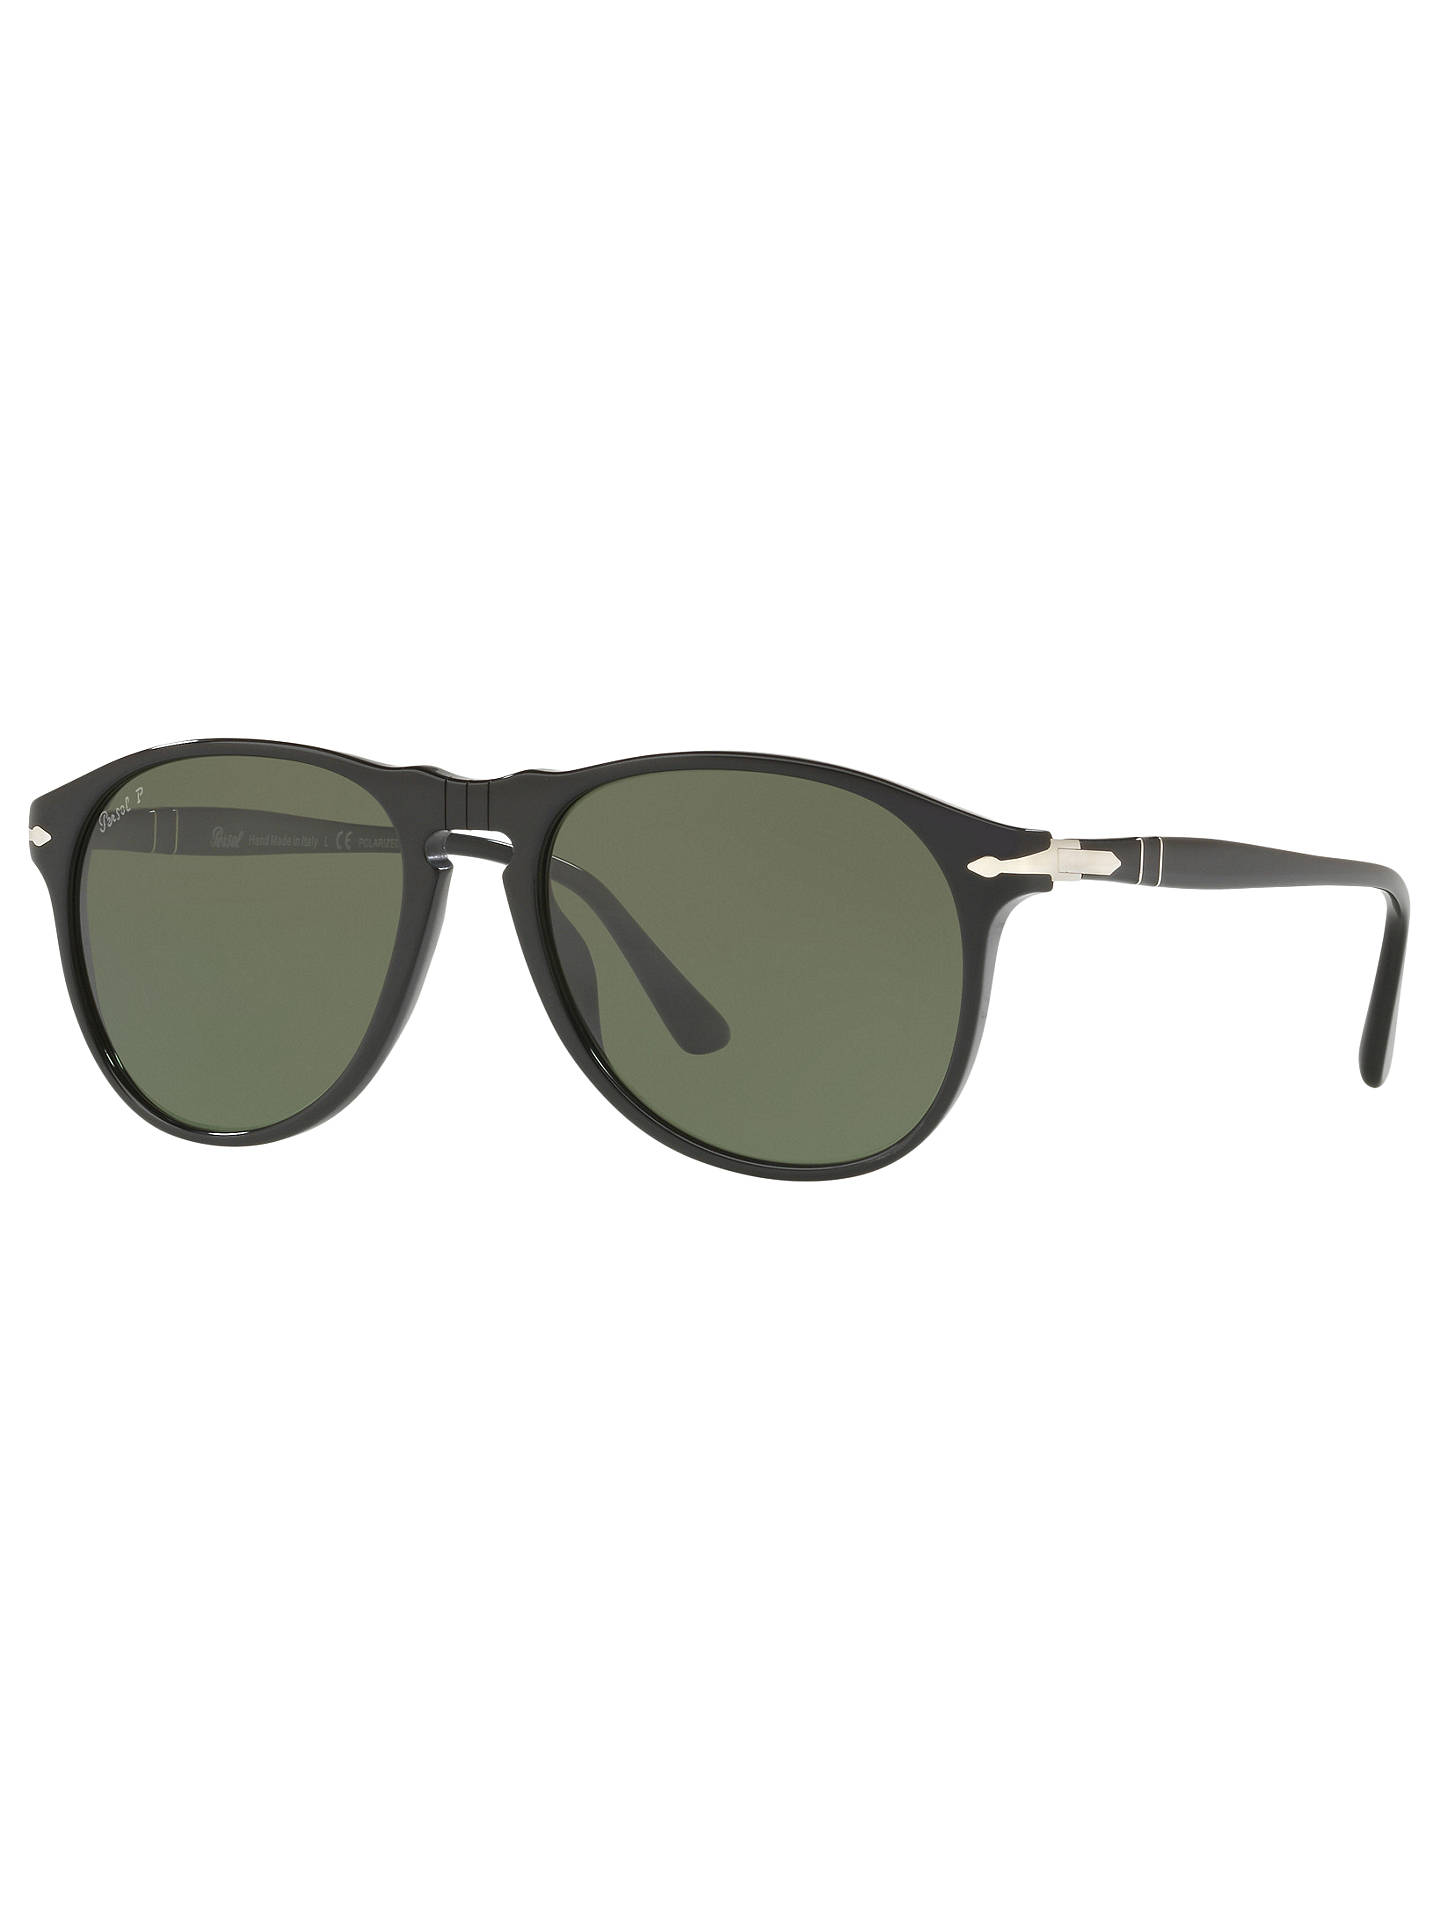 643a2a1b27920 Persol PO6649S Polarised Aviator Sunglasses at John Lewis   Partners